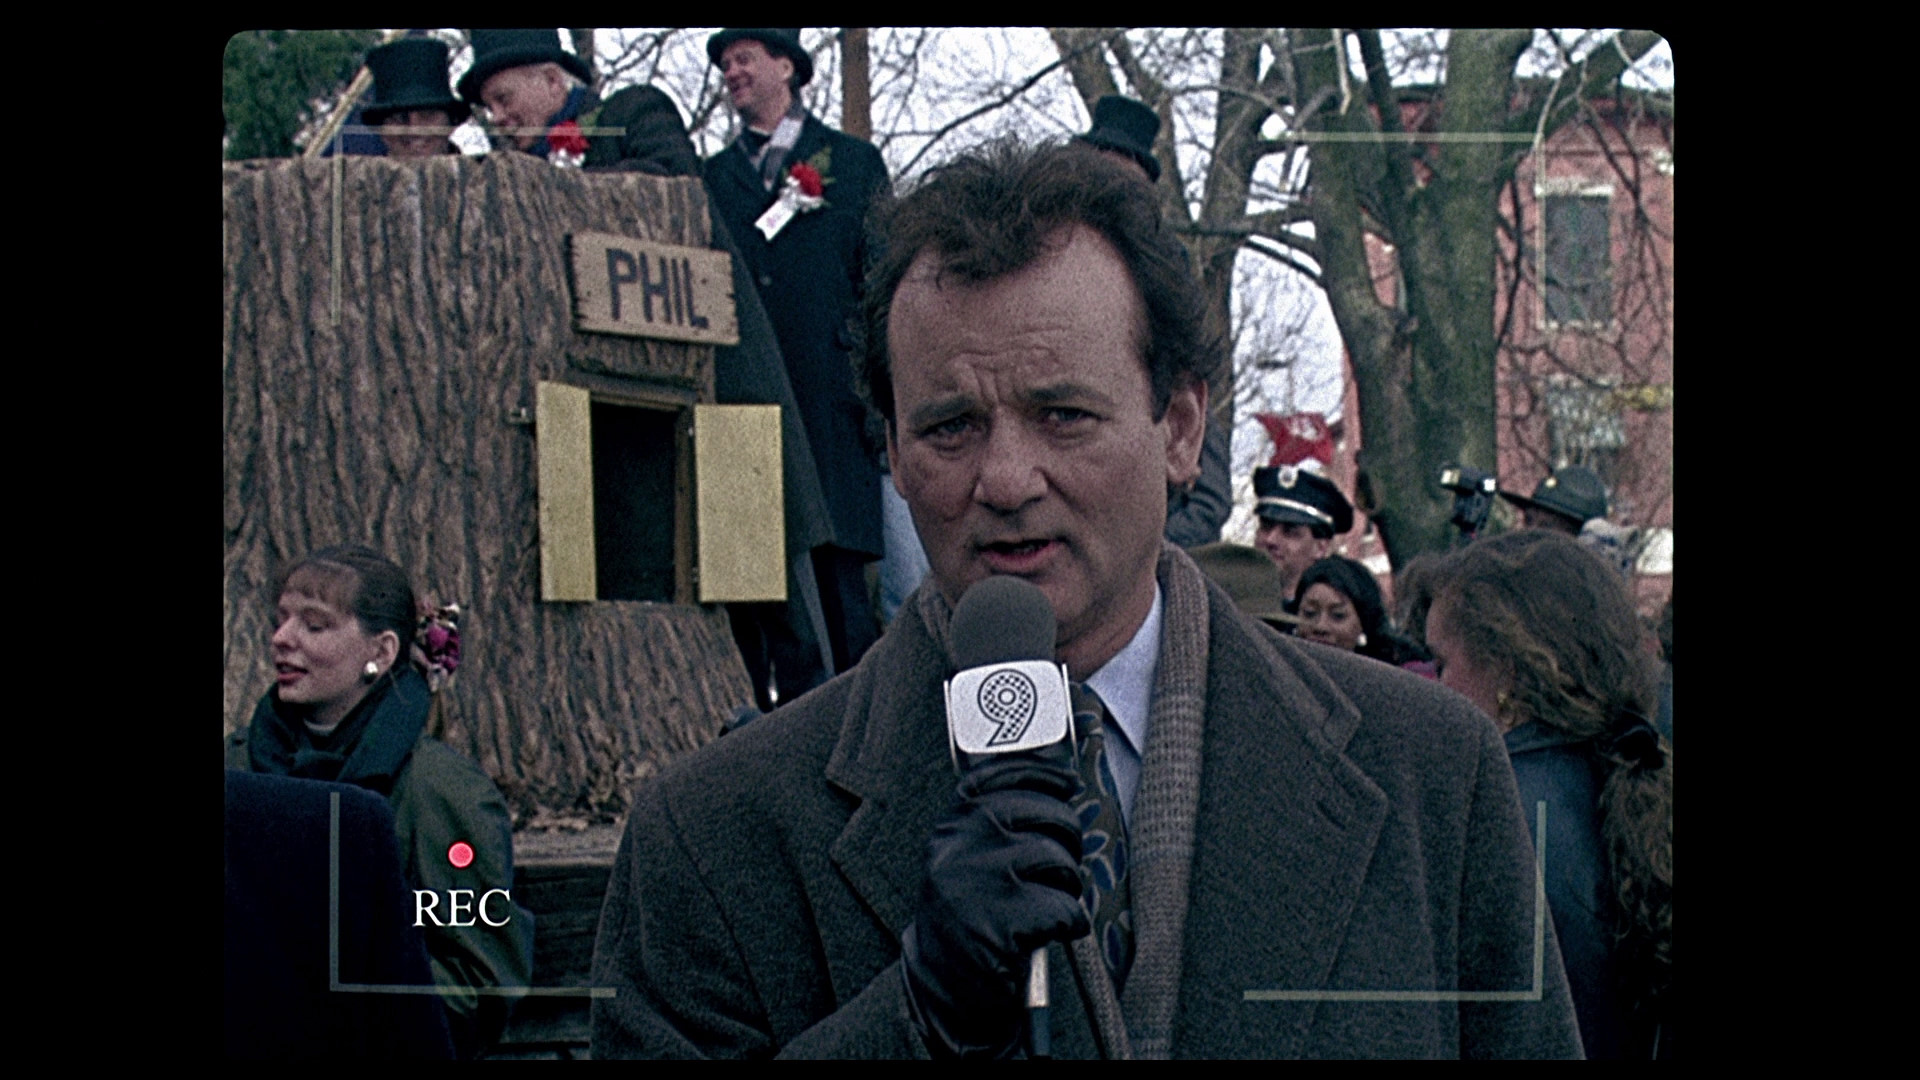 http://thisismylawn.files.wordpress.com/2011/02/groundhog-day-phil-connors.jpg